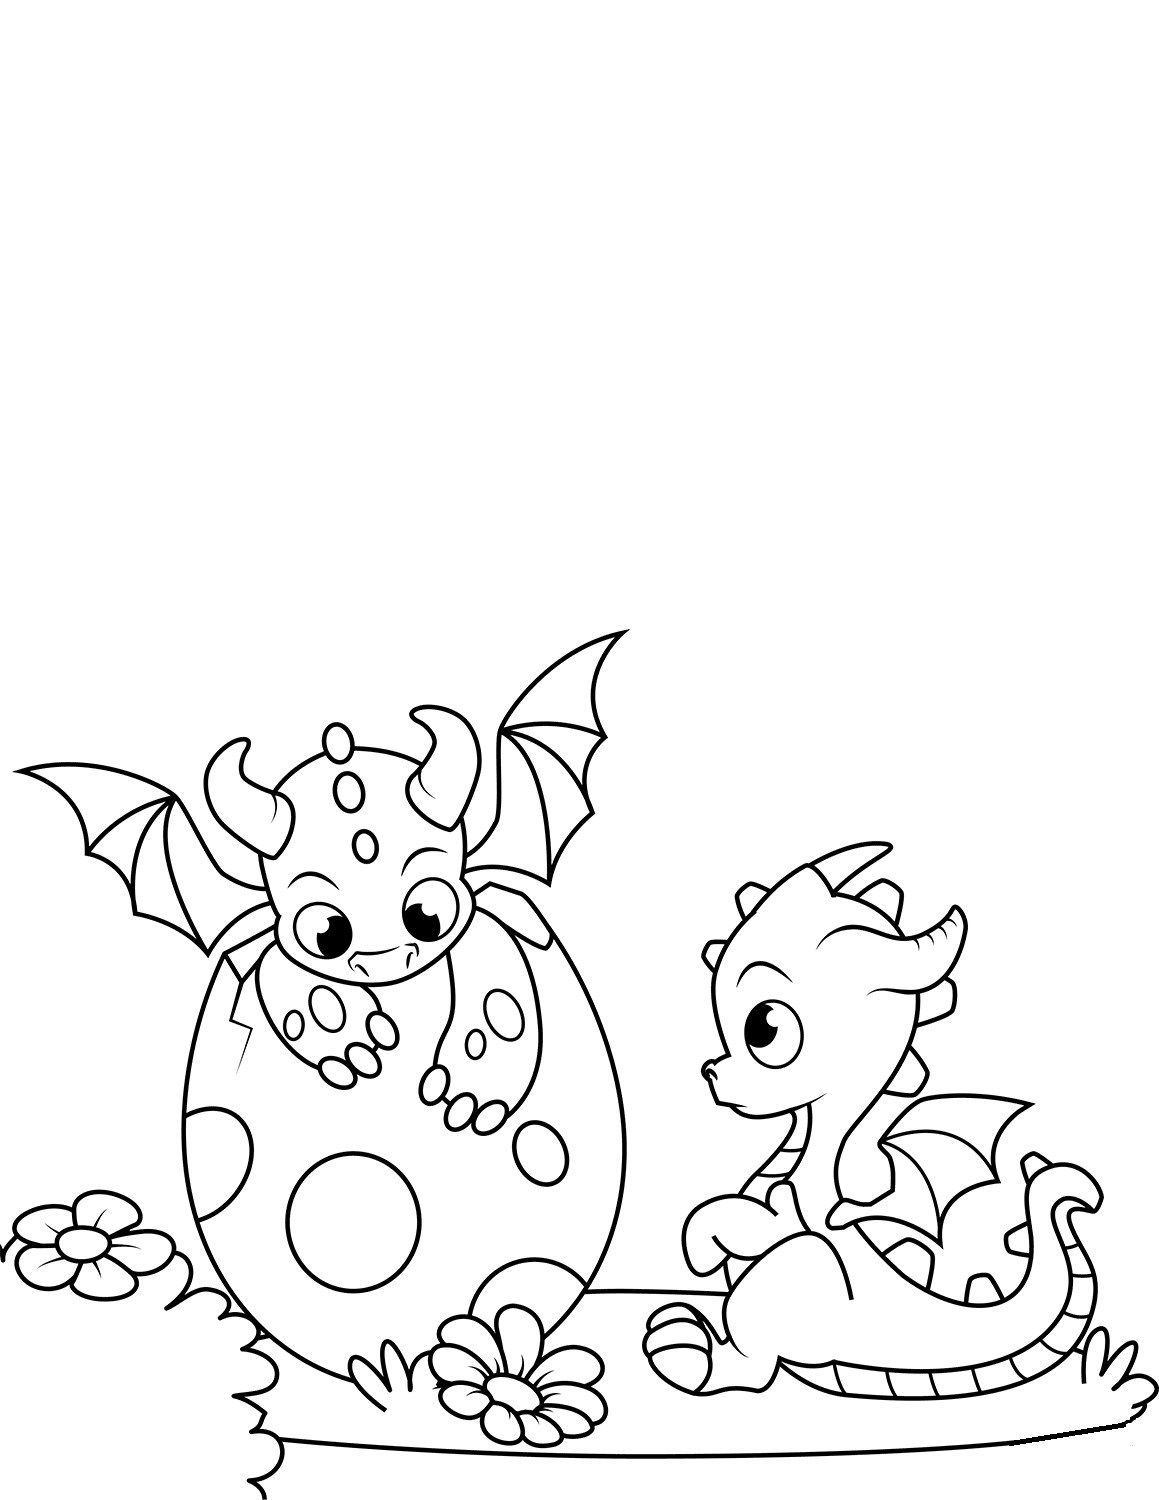 Cute Baby Dragon Coloring Pages For Children Printable Shelter Coloringpagestoprint Cute Ba Bunny Coloring Pages Dragon Coloring Page Cartoon Coloring Pages